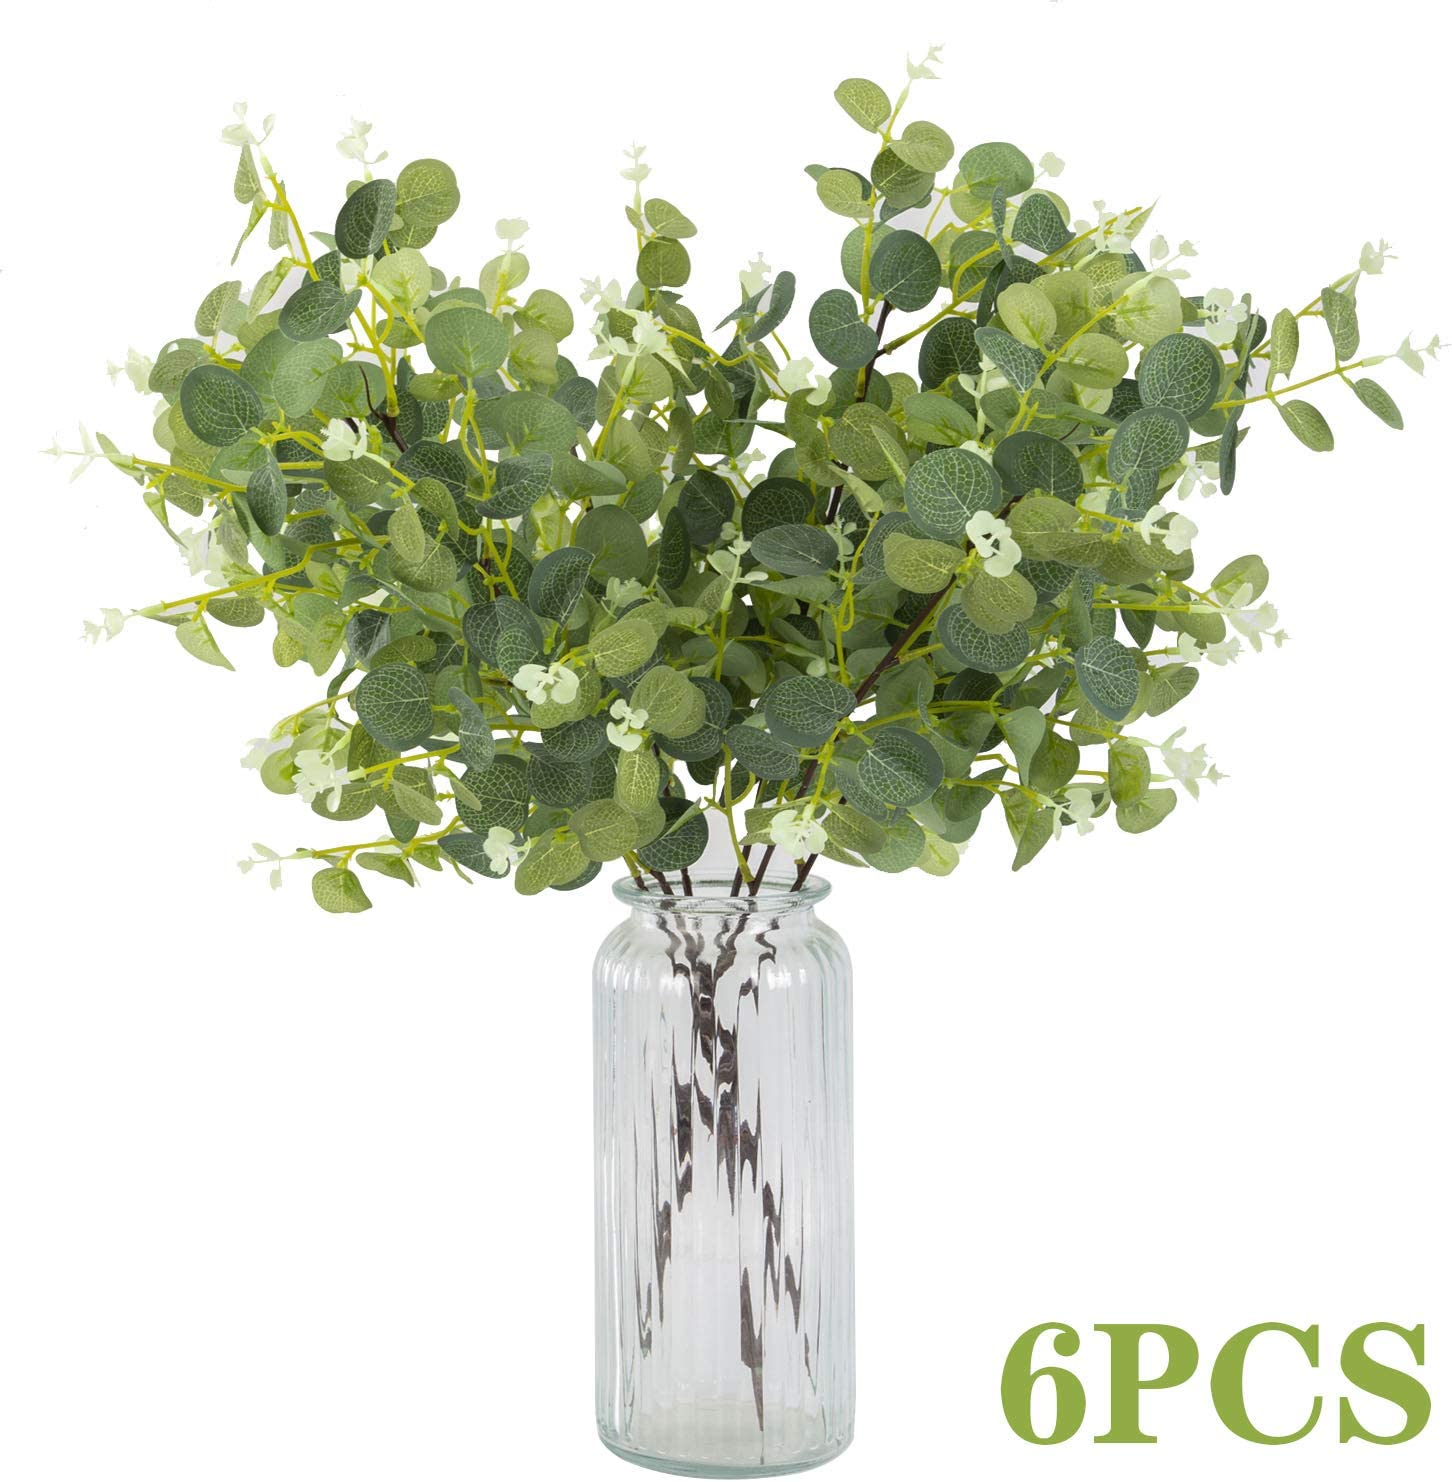 "23"" Artificial Greenery Eucalyptus Leaves Silk Plastic Plants Floral Greenery Stems for Home Party Wedding Decoration (6 PCS)"